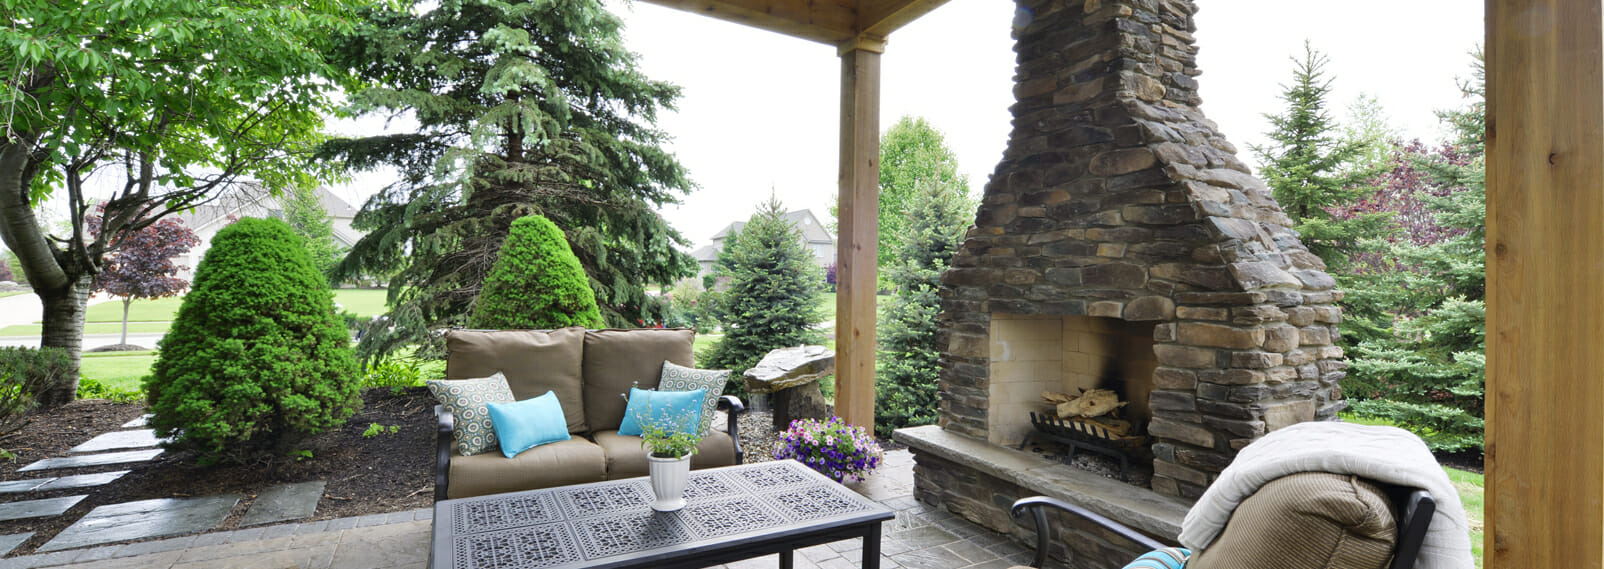 residential-landscaping-services